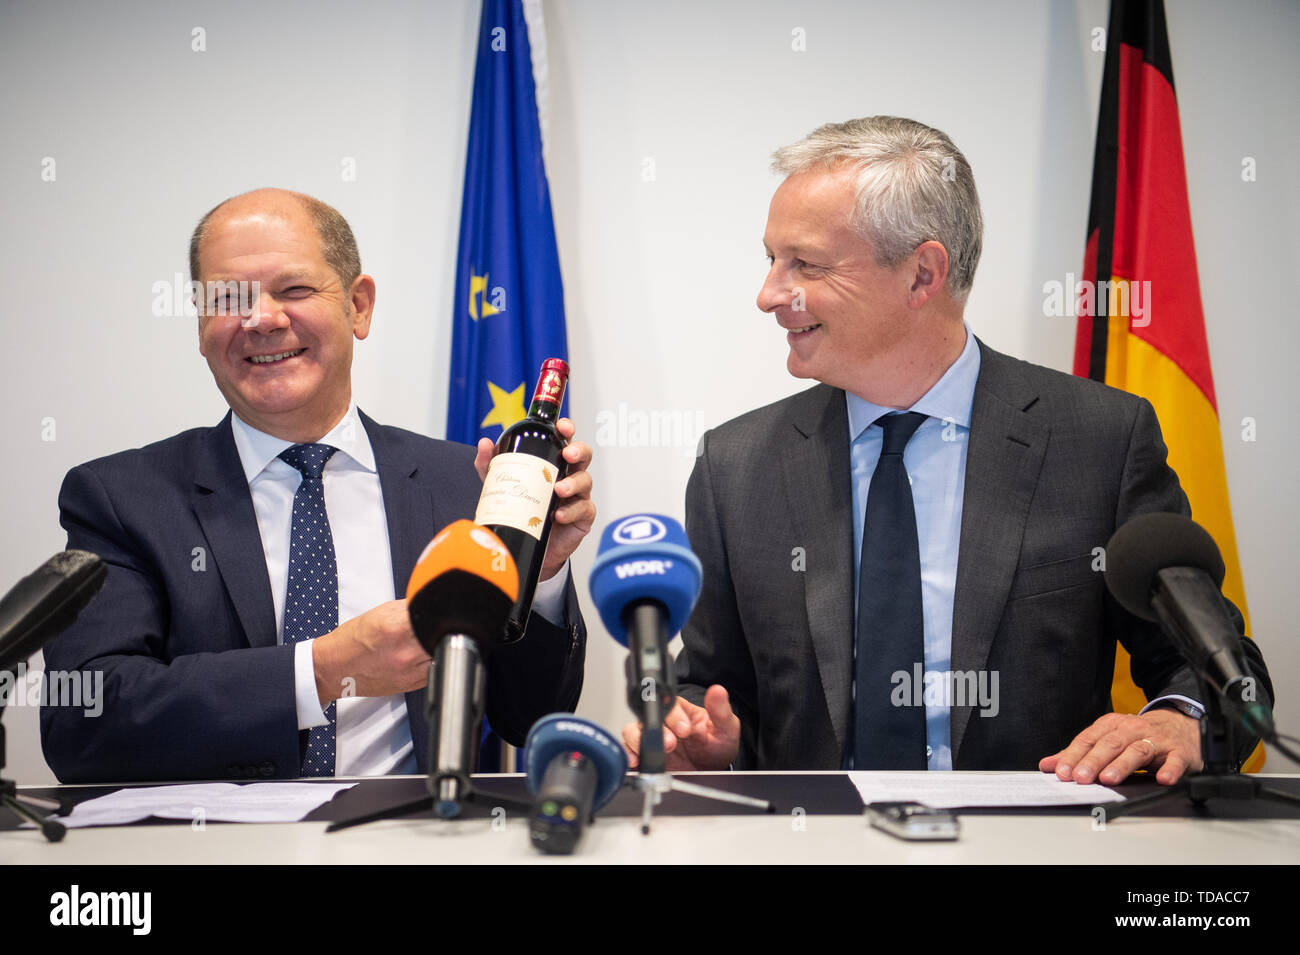 Luxemburg, Germany. 14th June, 2019. Olaf Scholz (SPD, l), Federal Minister of Finance, is holding a wine bottle in his hand which he received from Bruno Le Maire (r), Minister of Economic Affairs of France, as a birthday present before a joint press conference on the occasion of the Eurogroup meeting. At the meeting on Friday night, the finance ministers of the euro countries made progress on the controversial euro zone budget. Credit: Arne Immanuel Bänsch/dpa/Alamy Live News - Stock Image